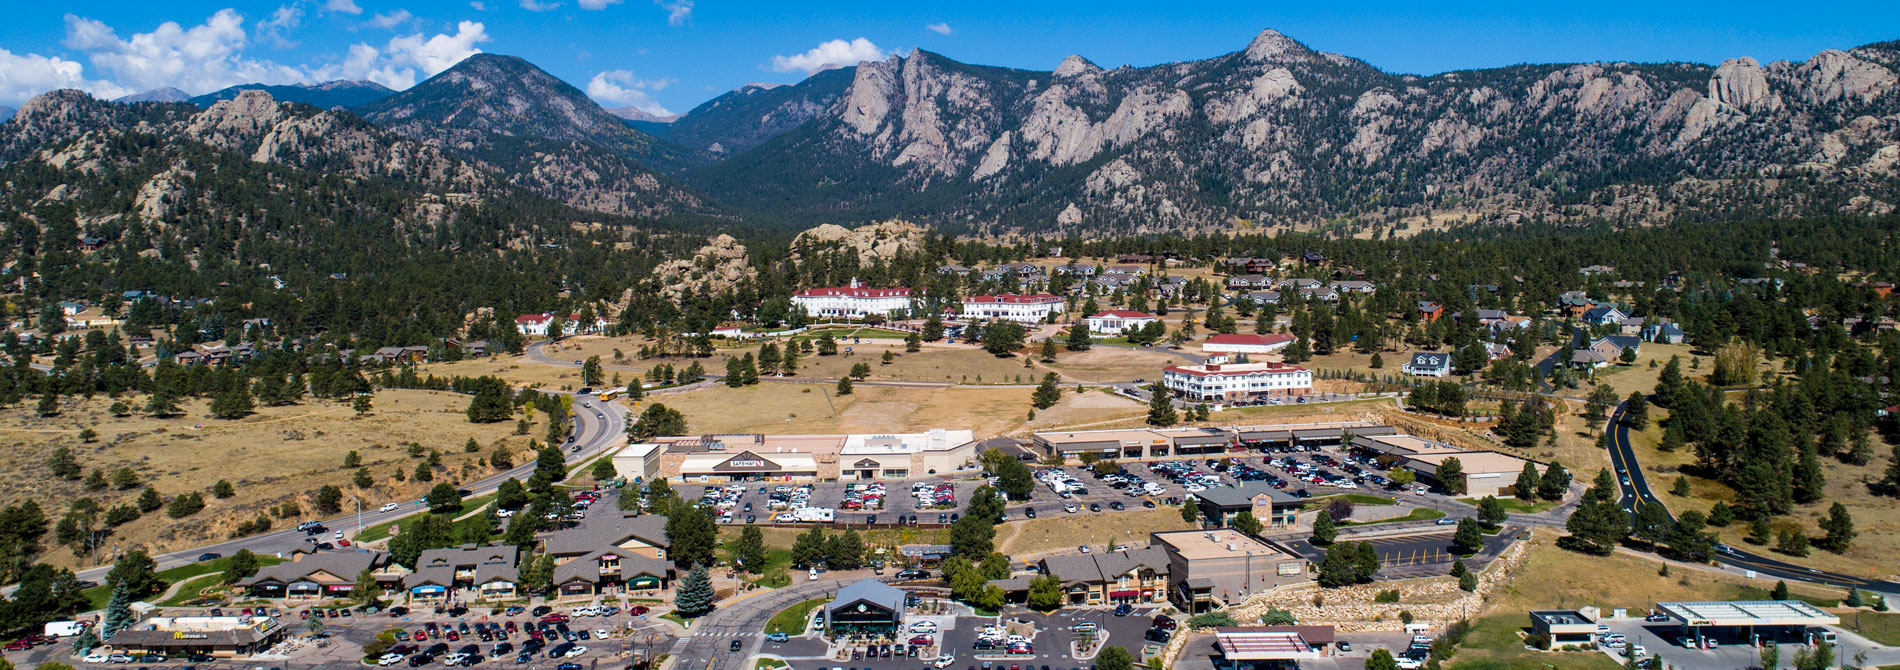 Full Property Stanley Village Estes Park